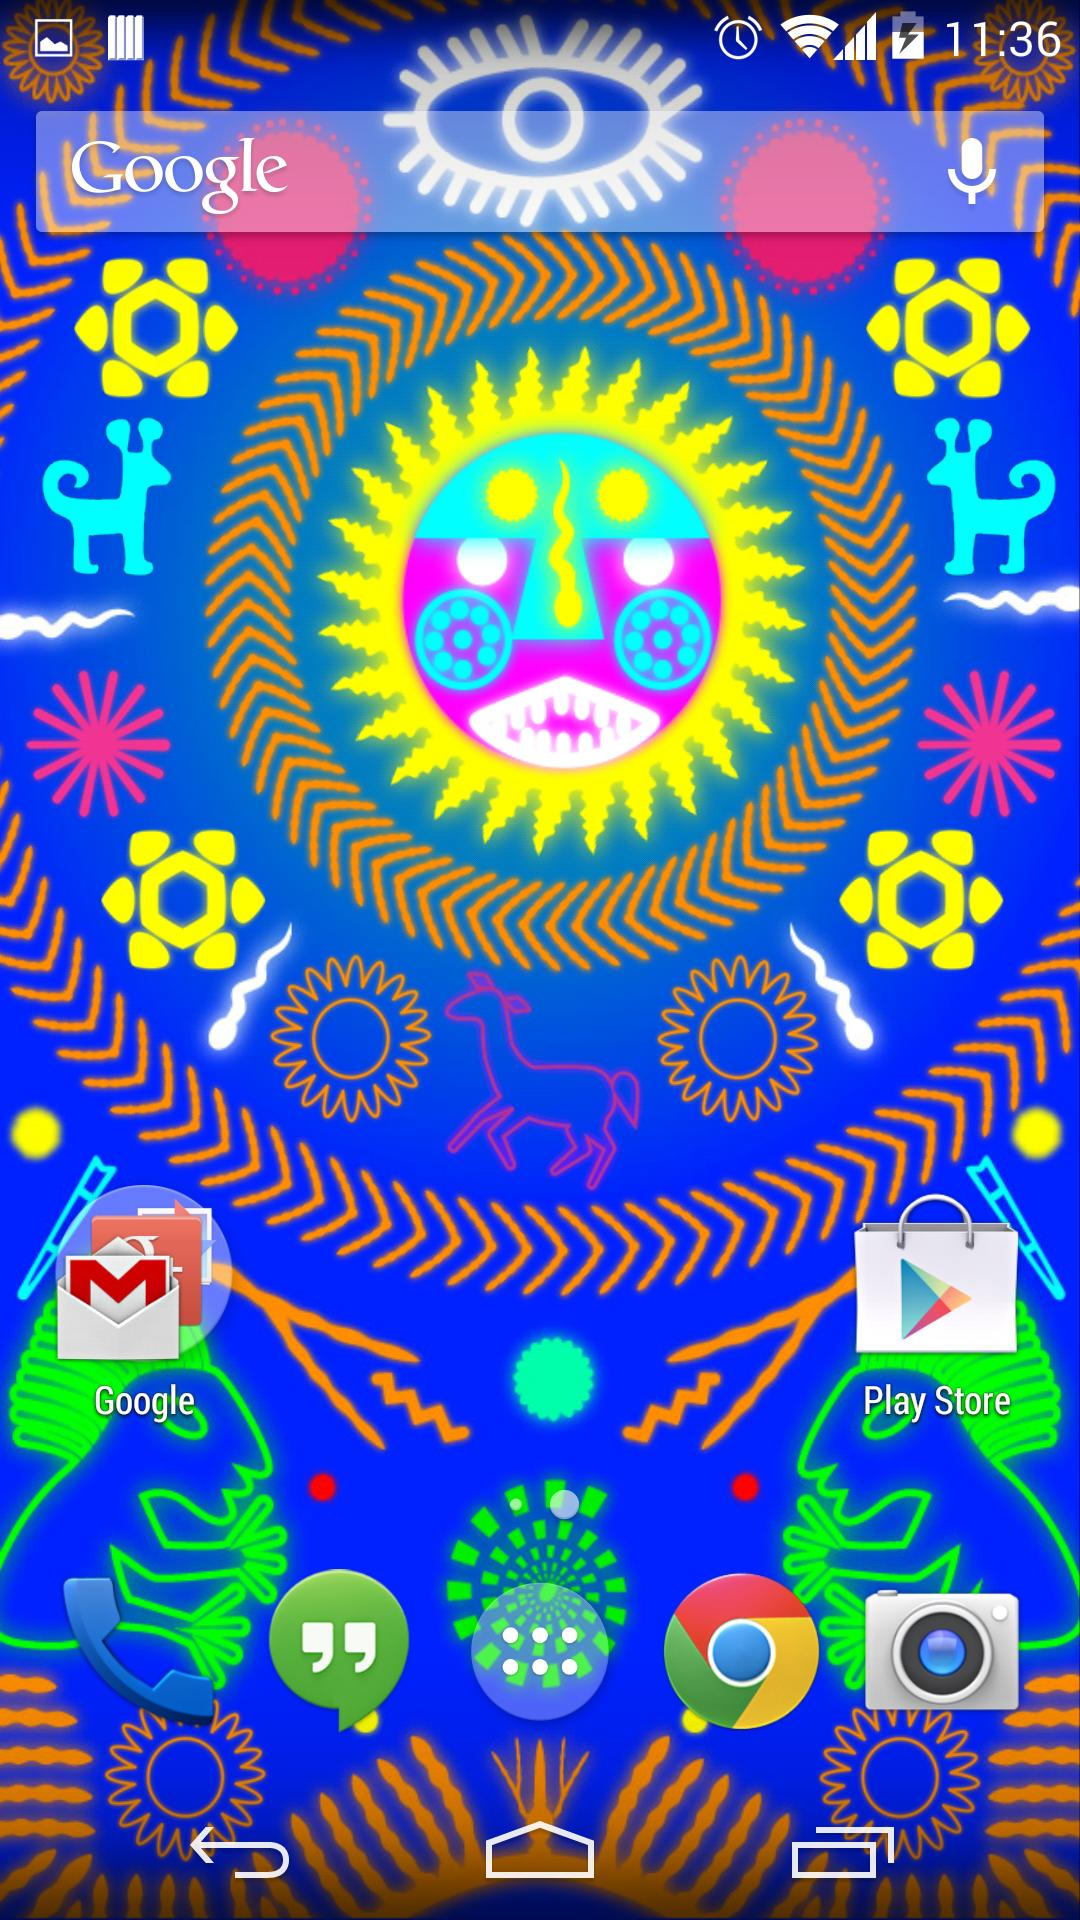 Huichol Live Wallpaper for Android   APK Download 1080x1920